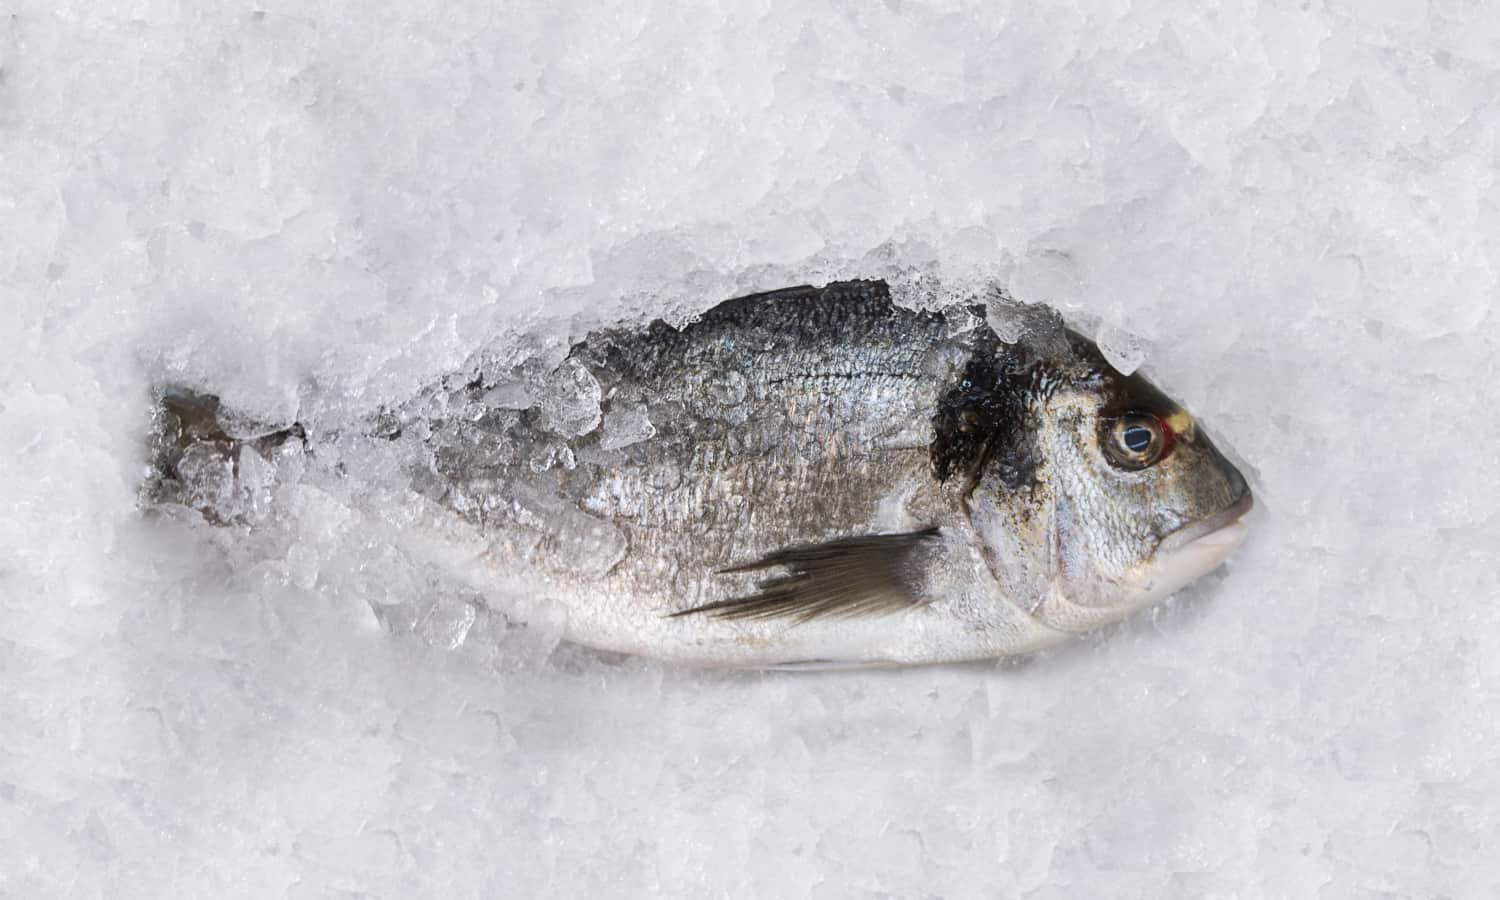 Creating a sustainable food system that contains fish is possible, but requires us to look beyond the fillet. Chef Josh Niland from the Australian restaurant Saint Peter talks about how it can be done.